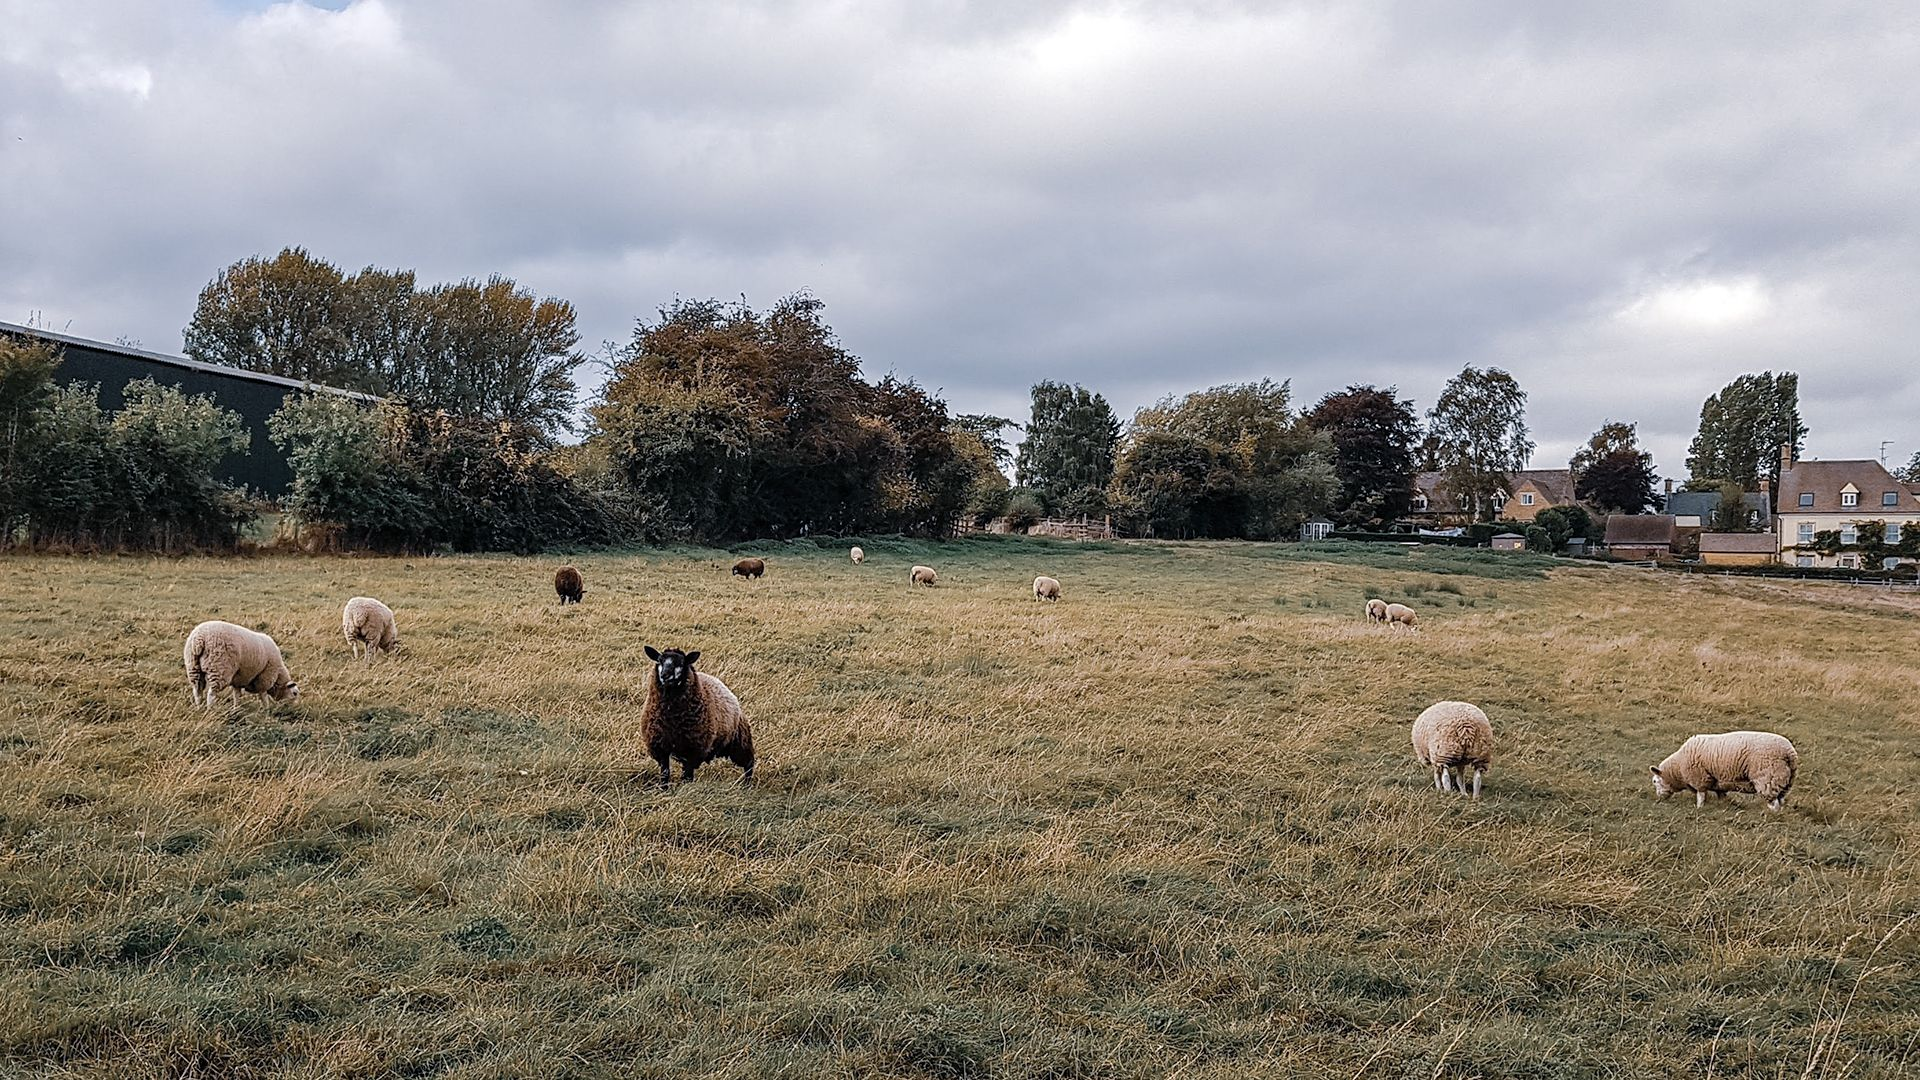 Sheep grazing in a field in the Cotswolds village of Ebringtom